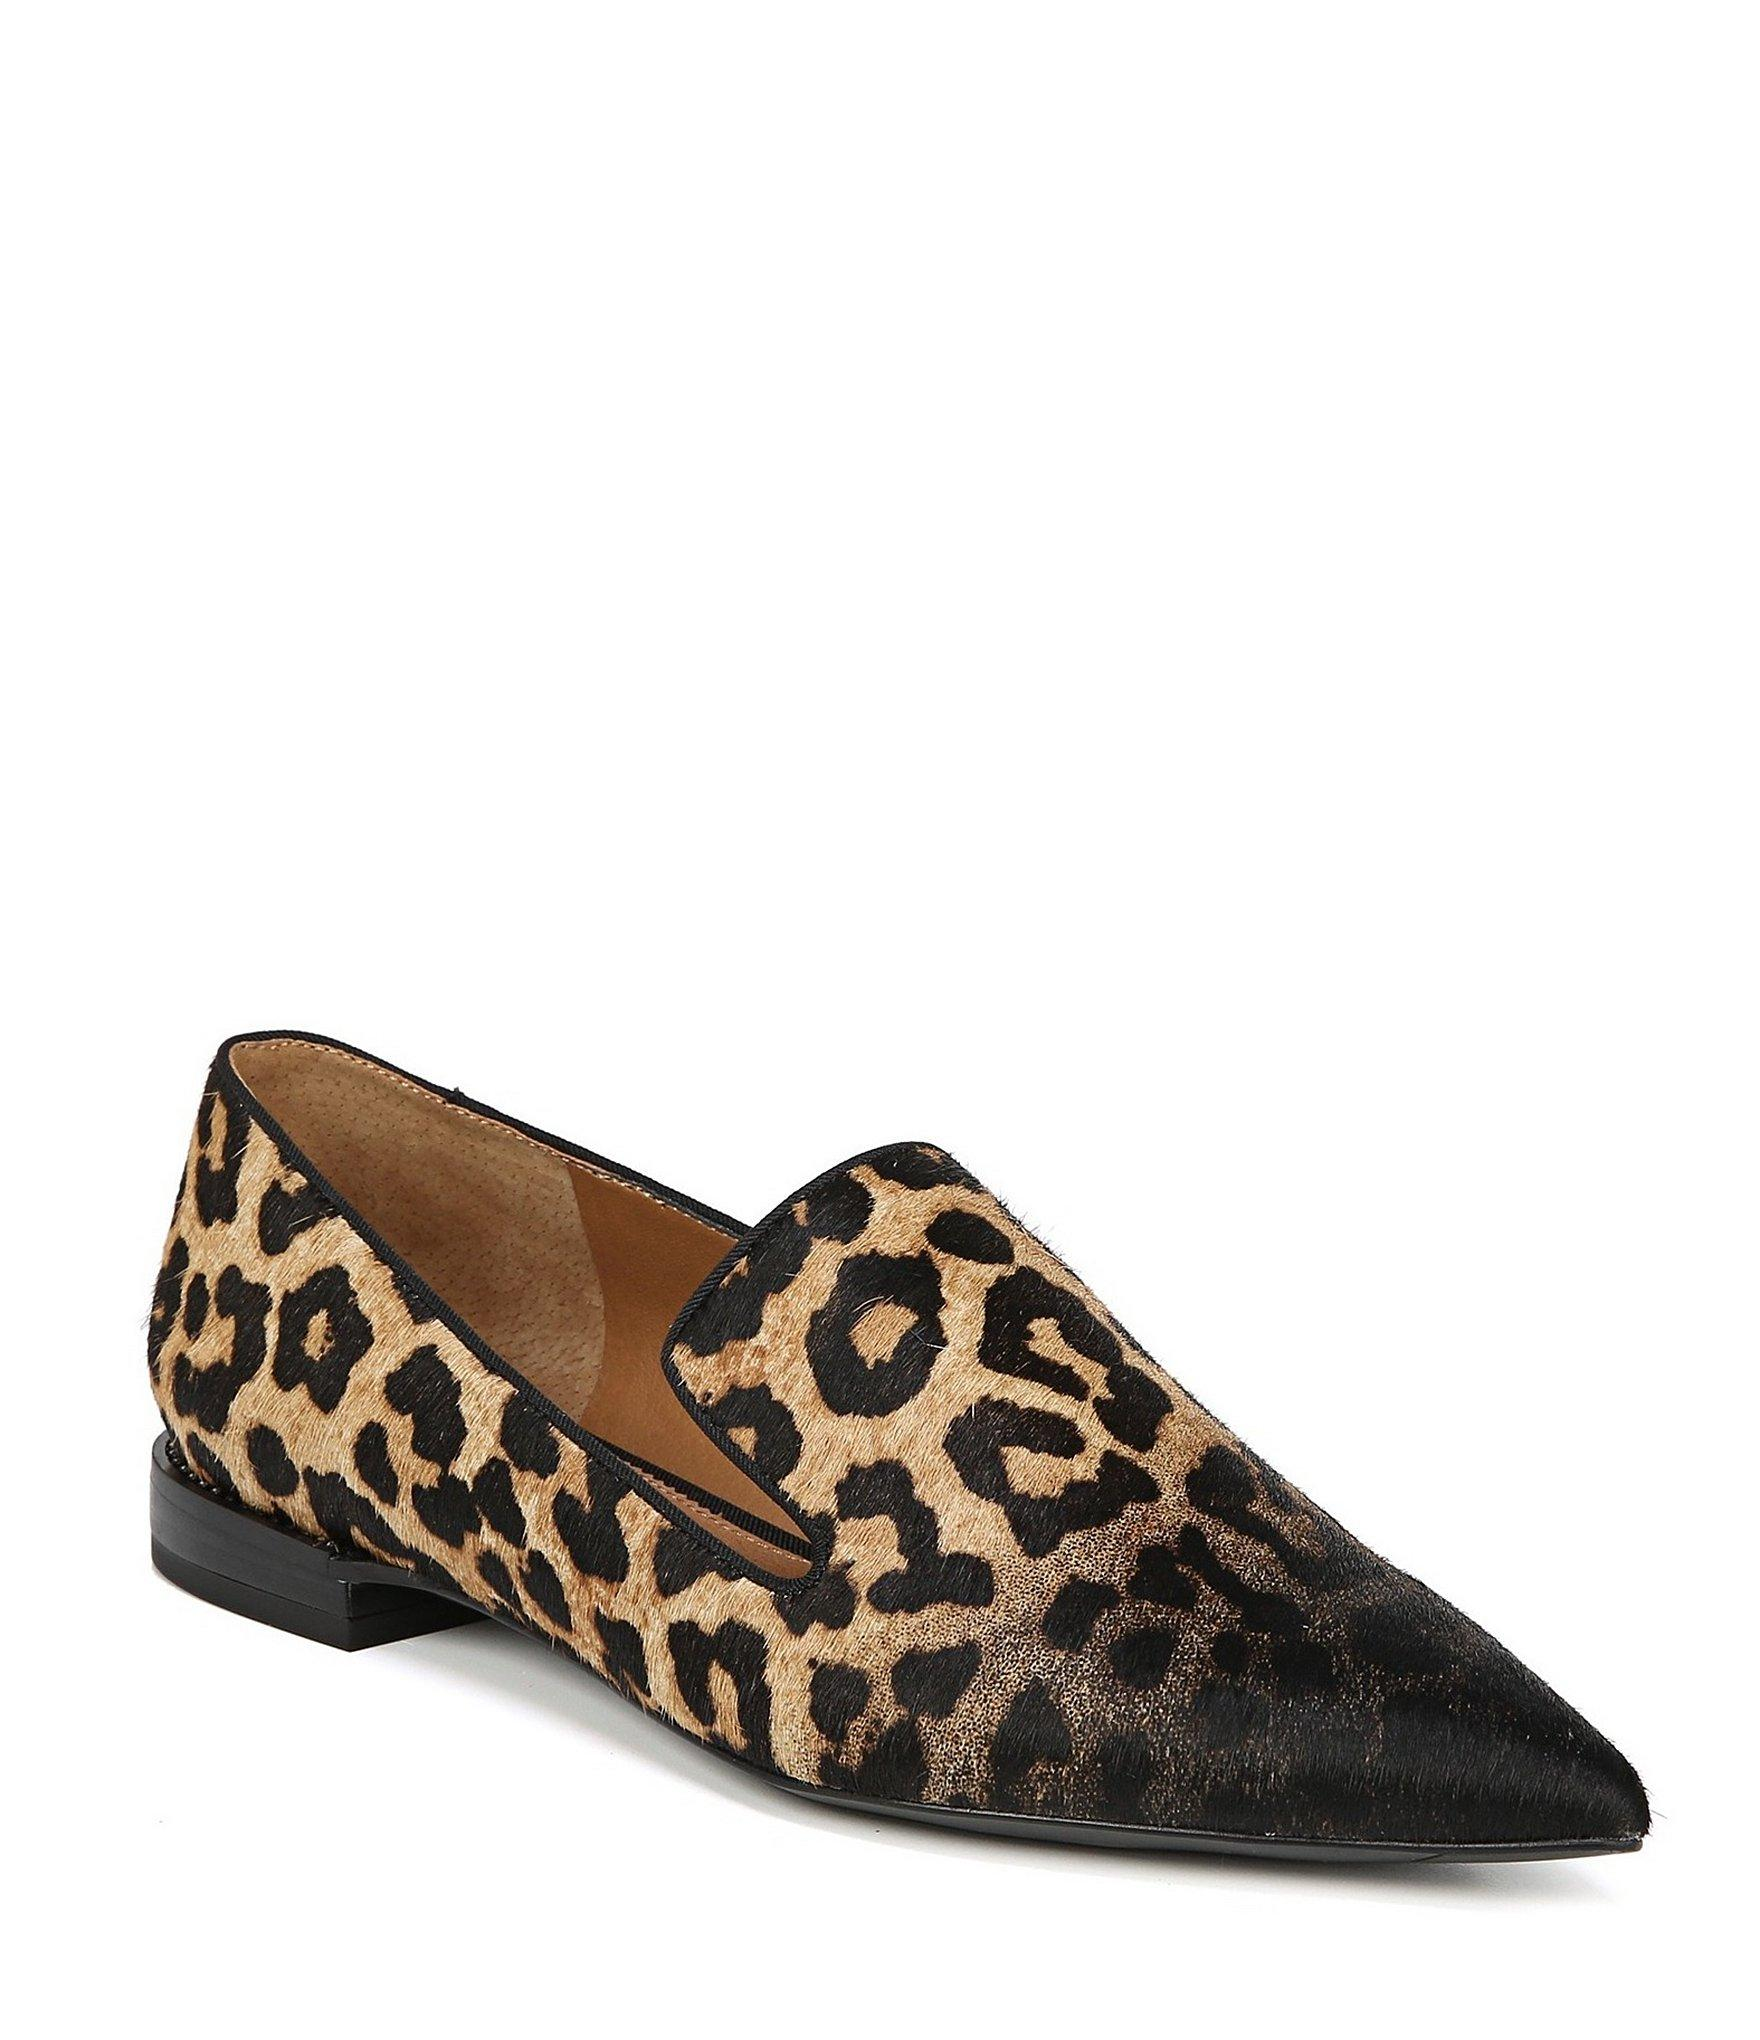 2fcac724e6c Franco Sarto. Women s Sarto By Topaz 2 Leopard Print Calf Hair Loafers